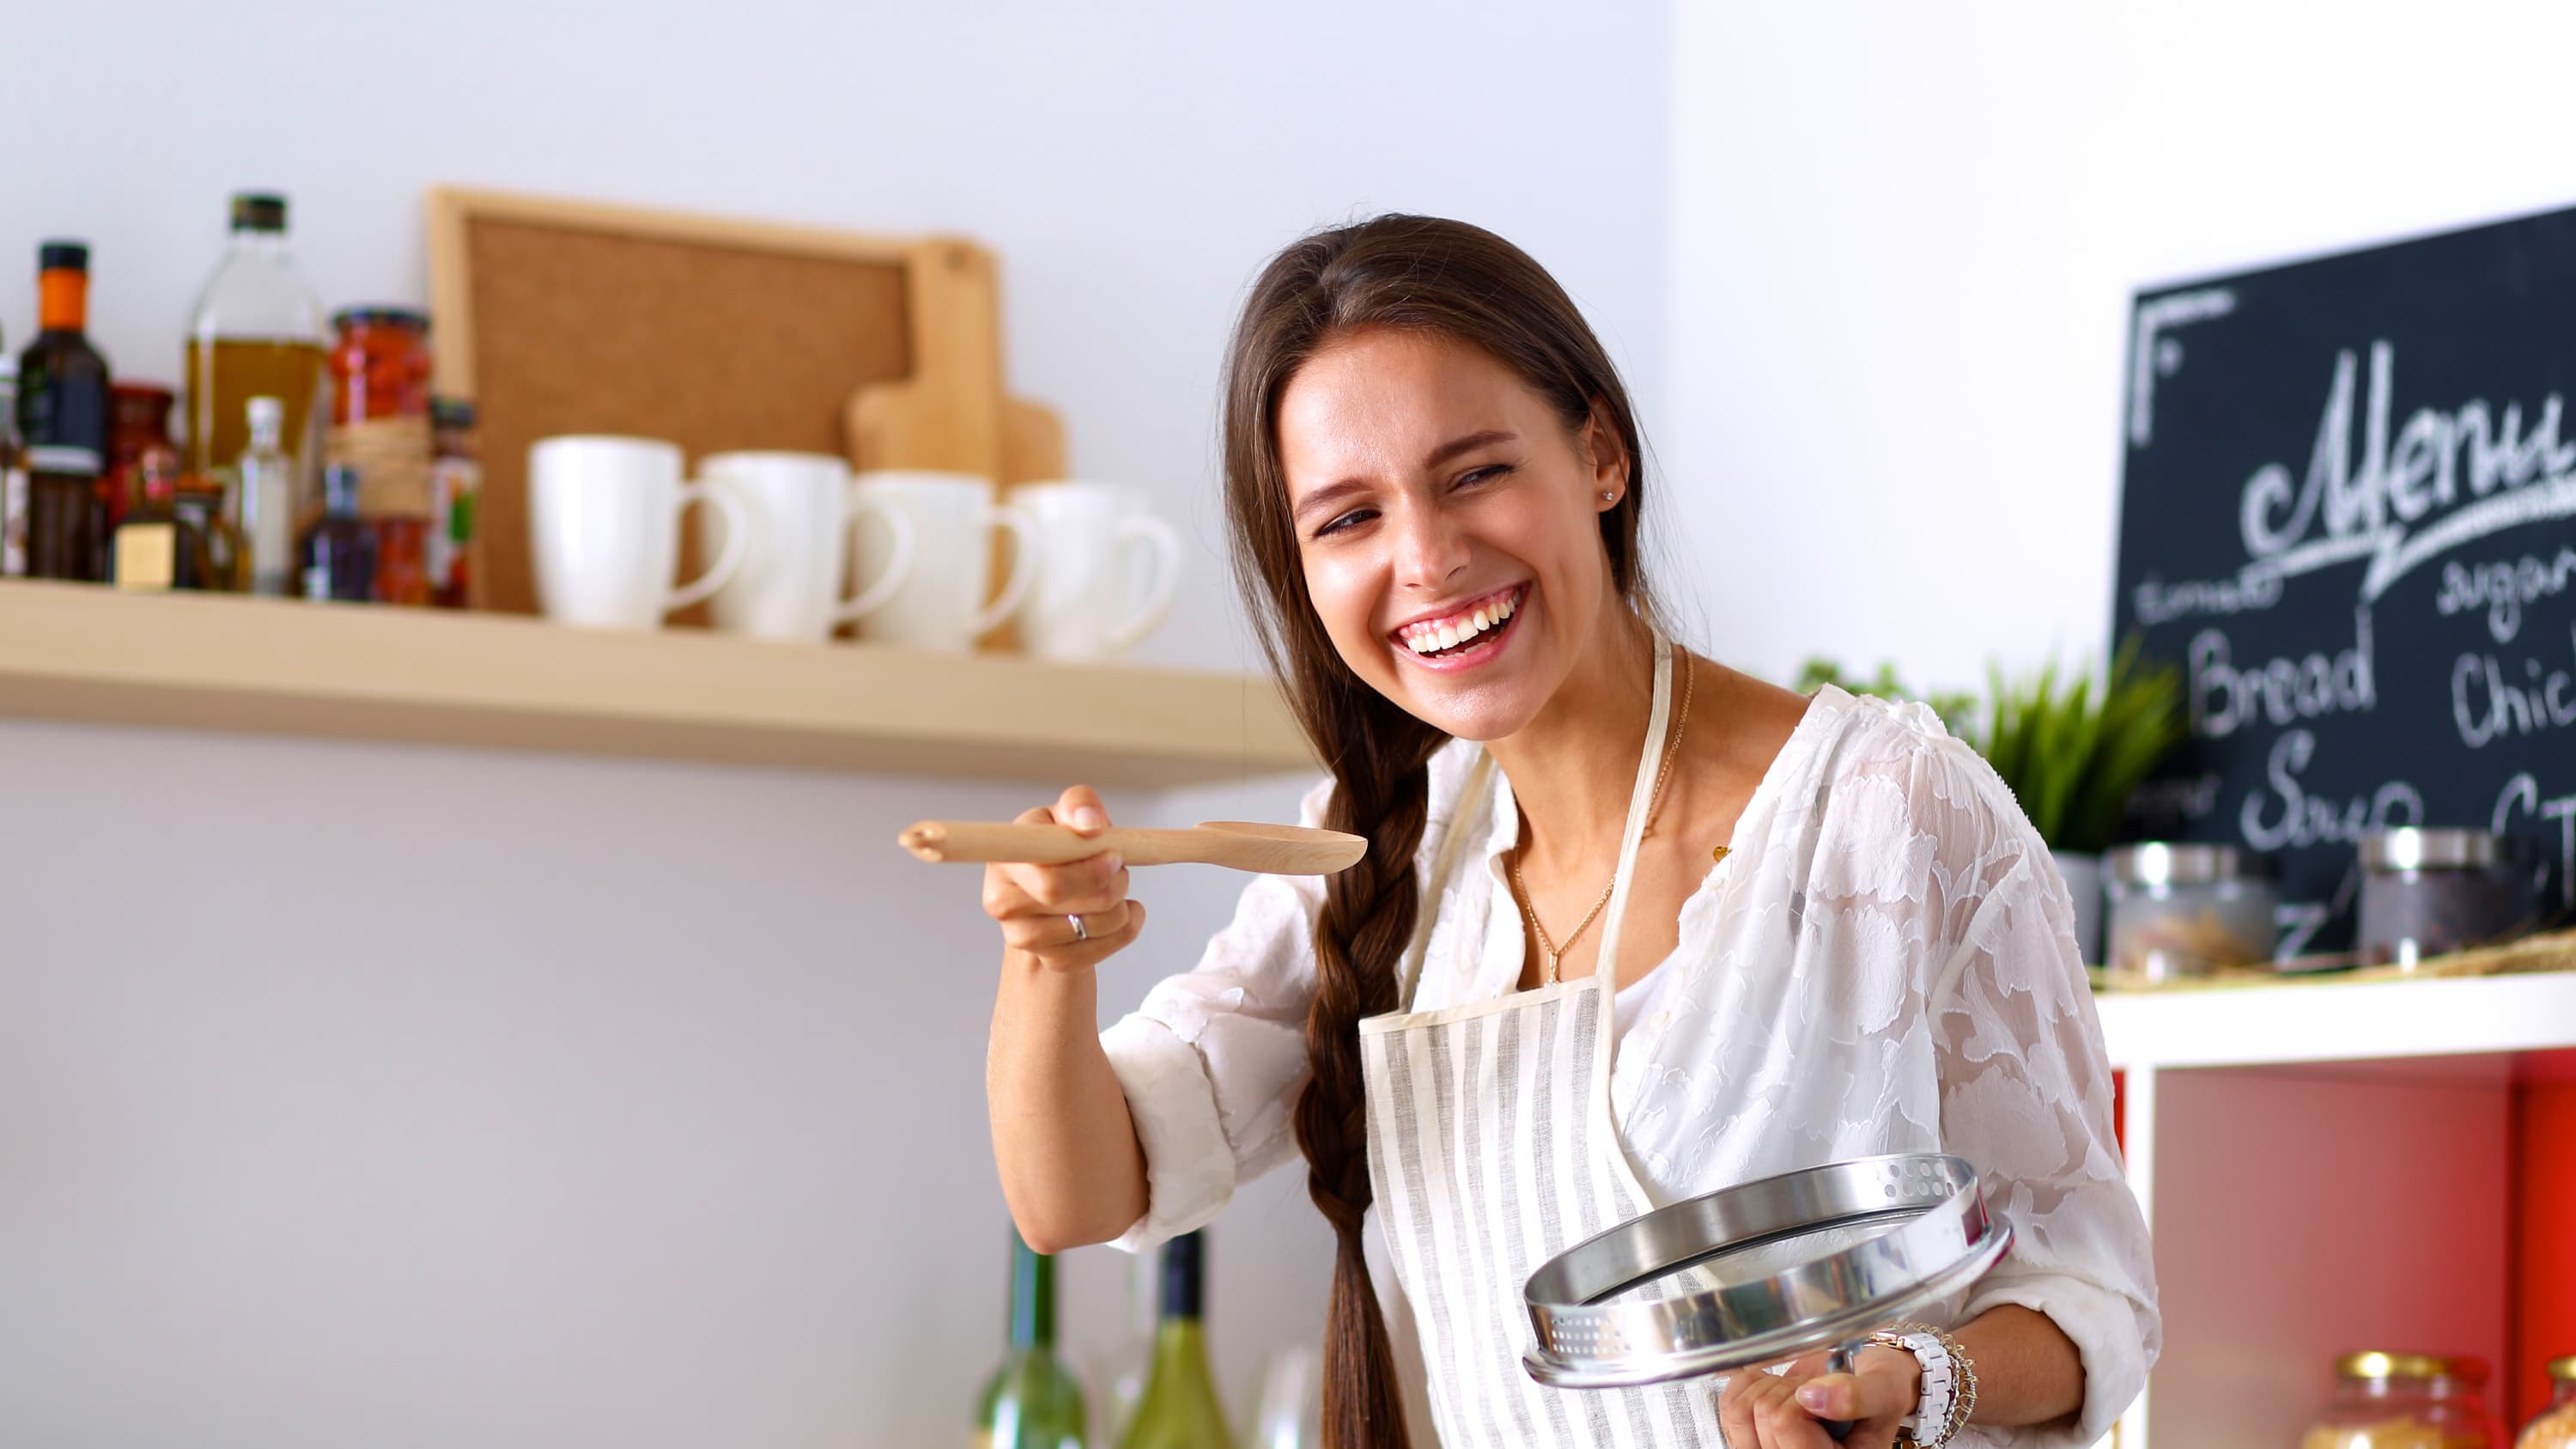 woman tasting and swallowing her cooking, which might be an issue for someone with esophageal cancer